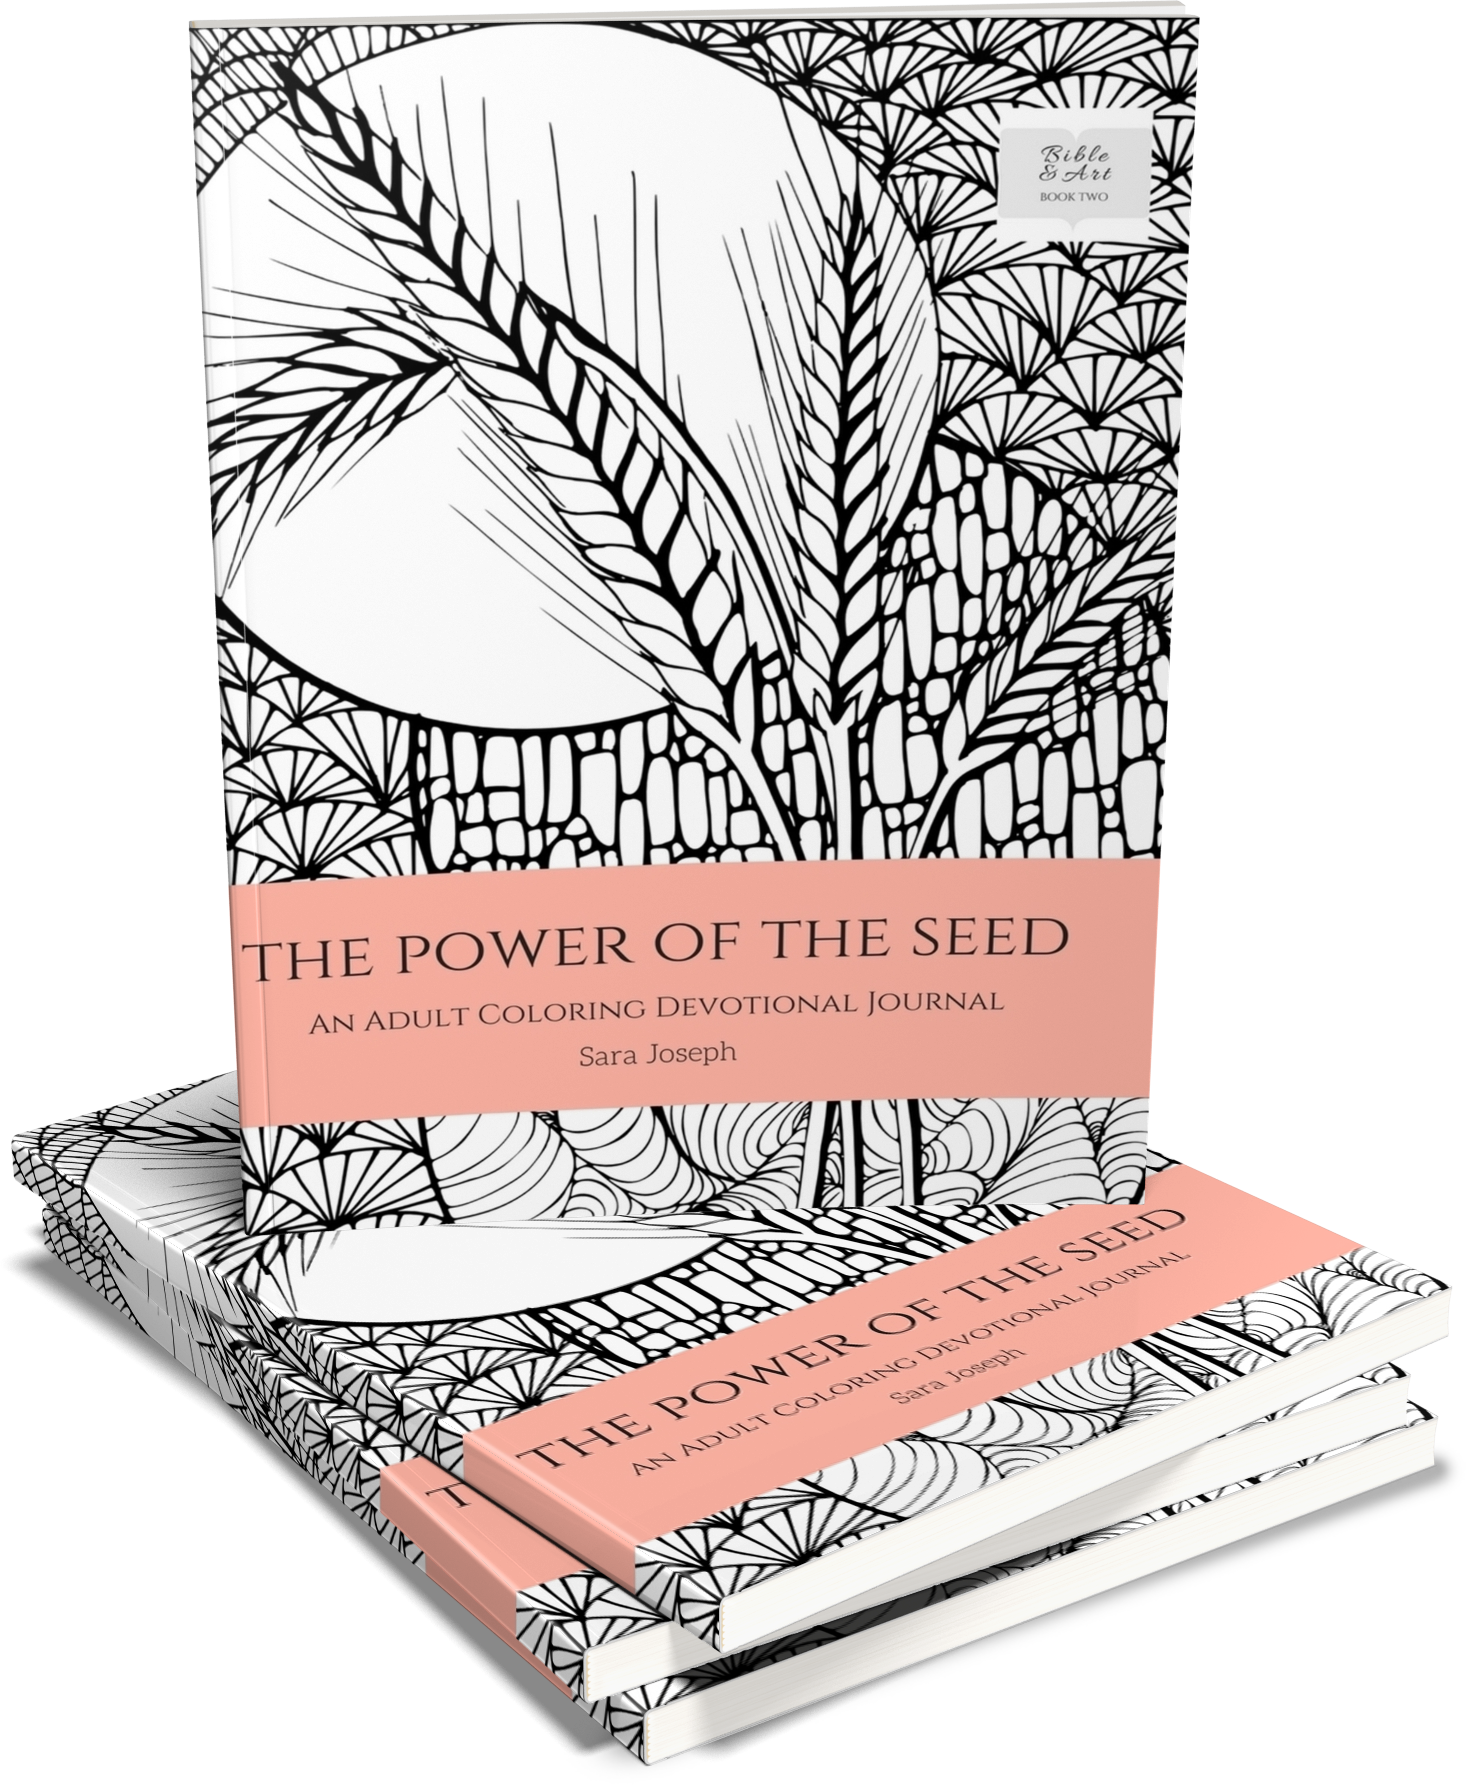 The Power of the Seed: An Adult Coloring Devotional Journal